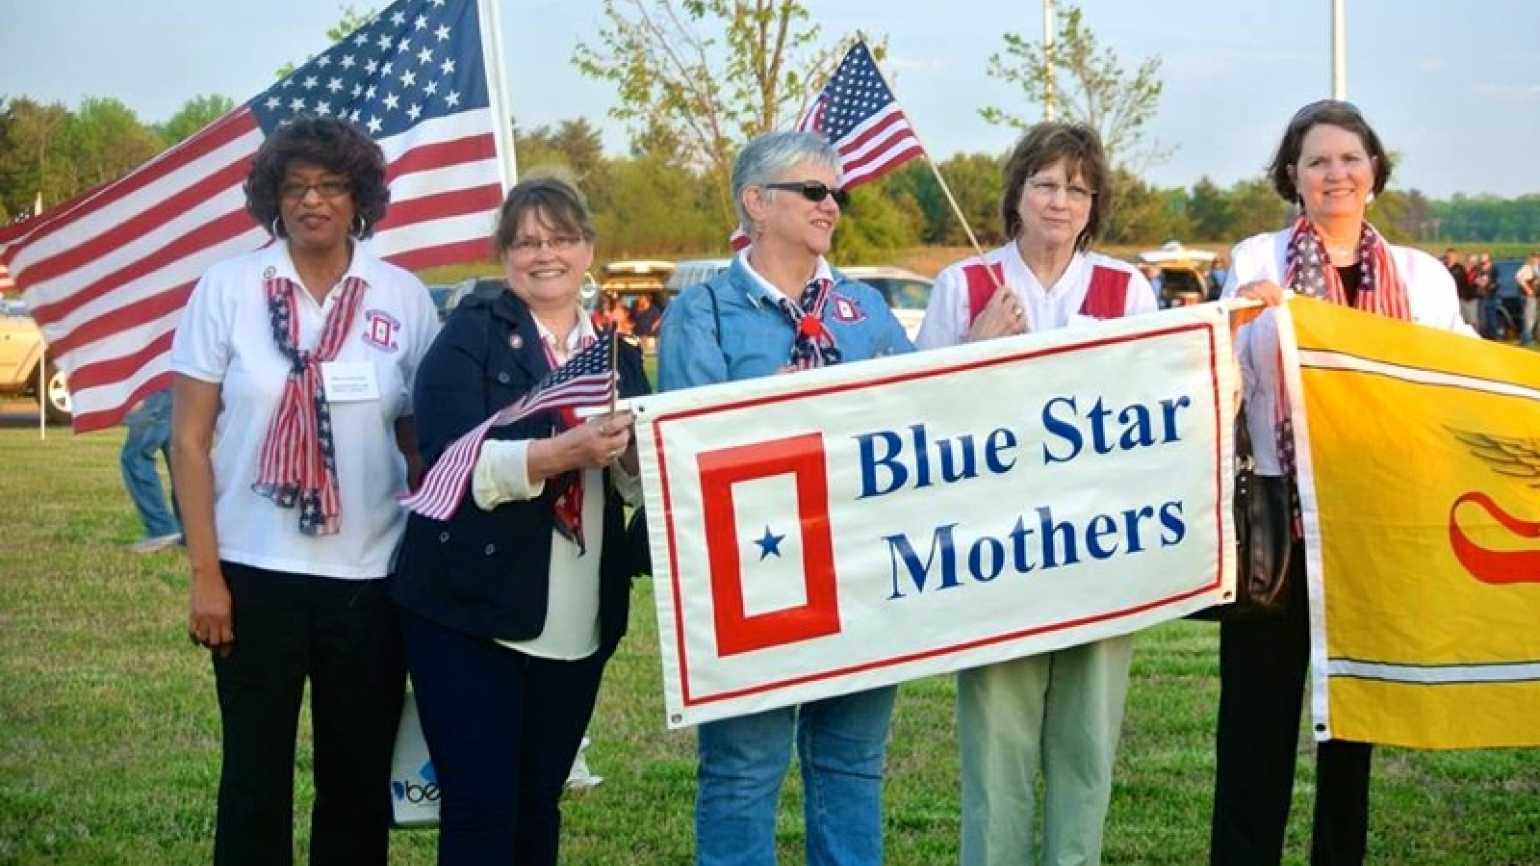 Outreach Ministries blogger Edie Melson and a group of Blue Star Mothers